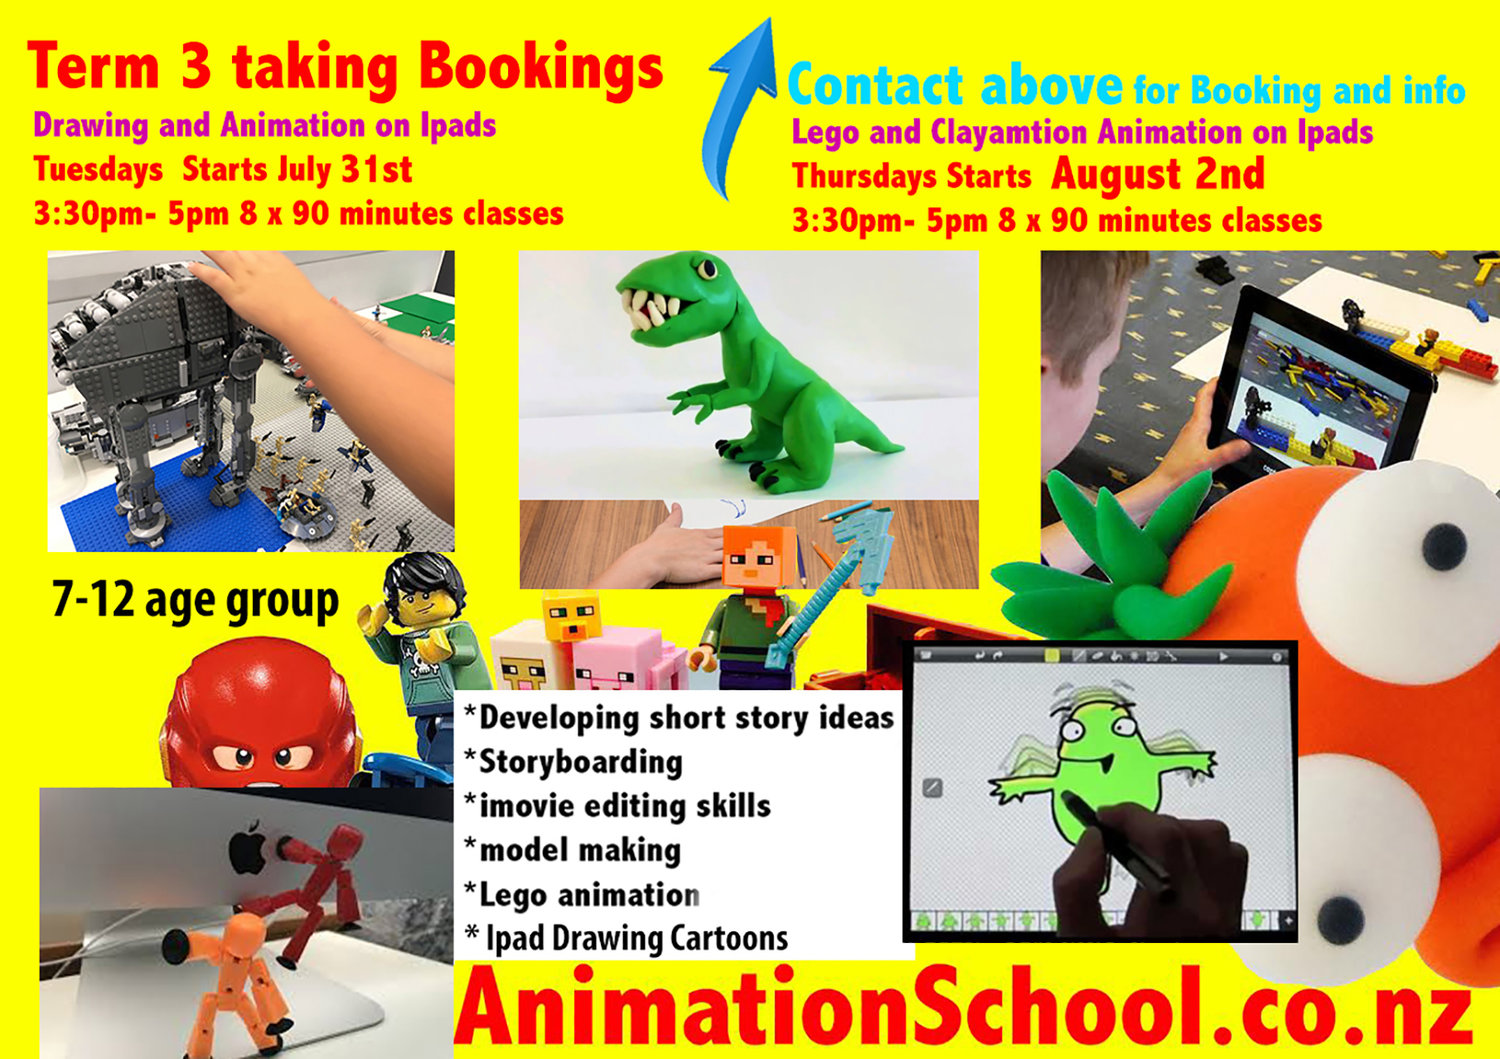 ANIMATIONSCHOOL.CO.NZ